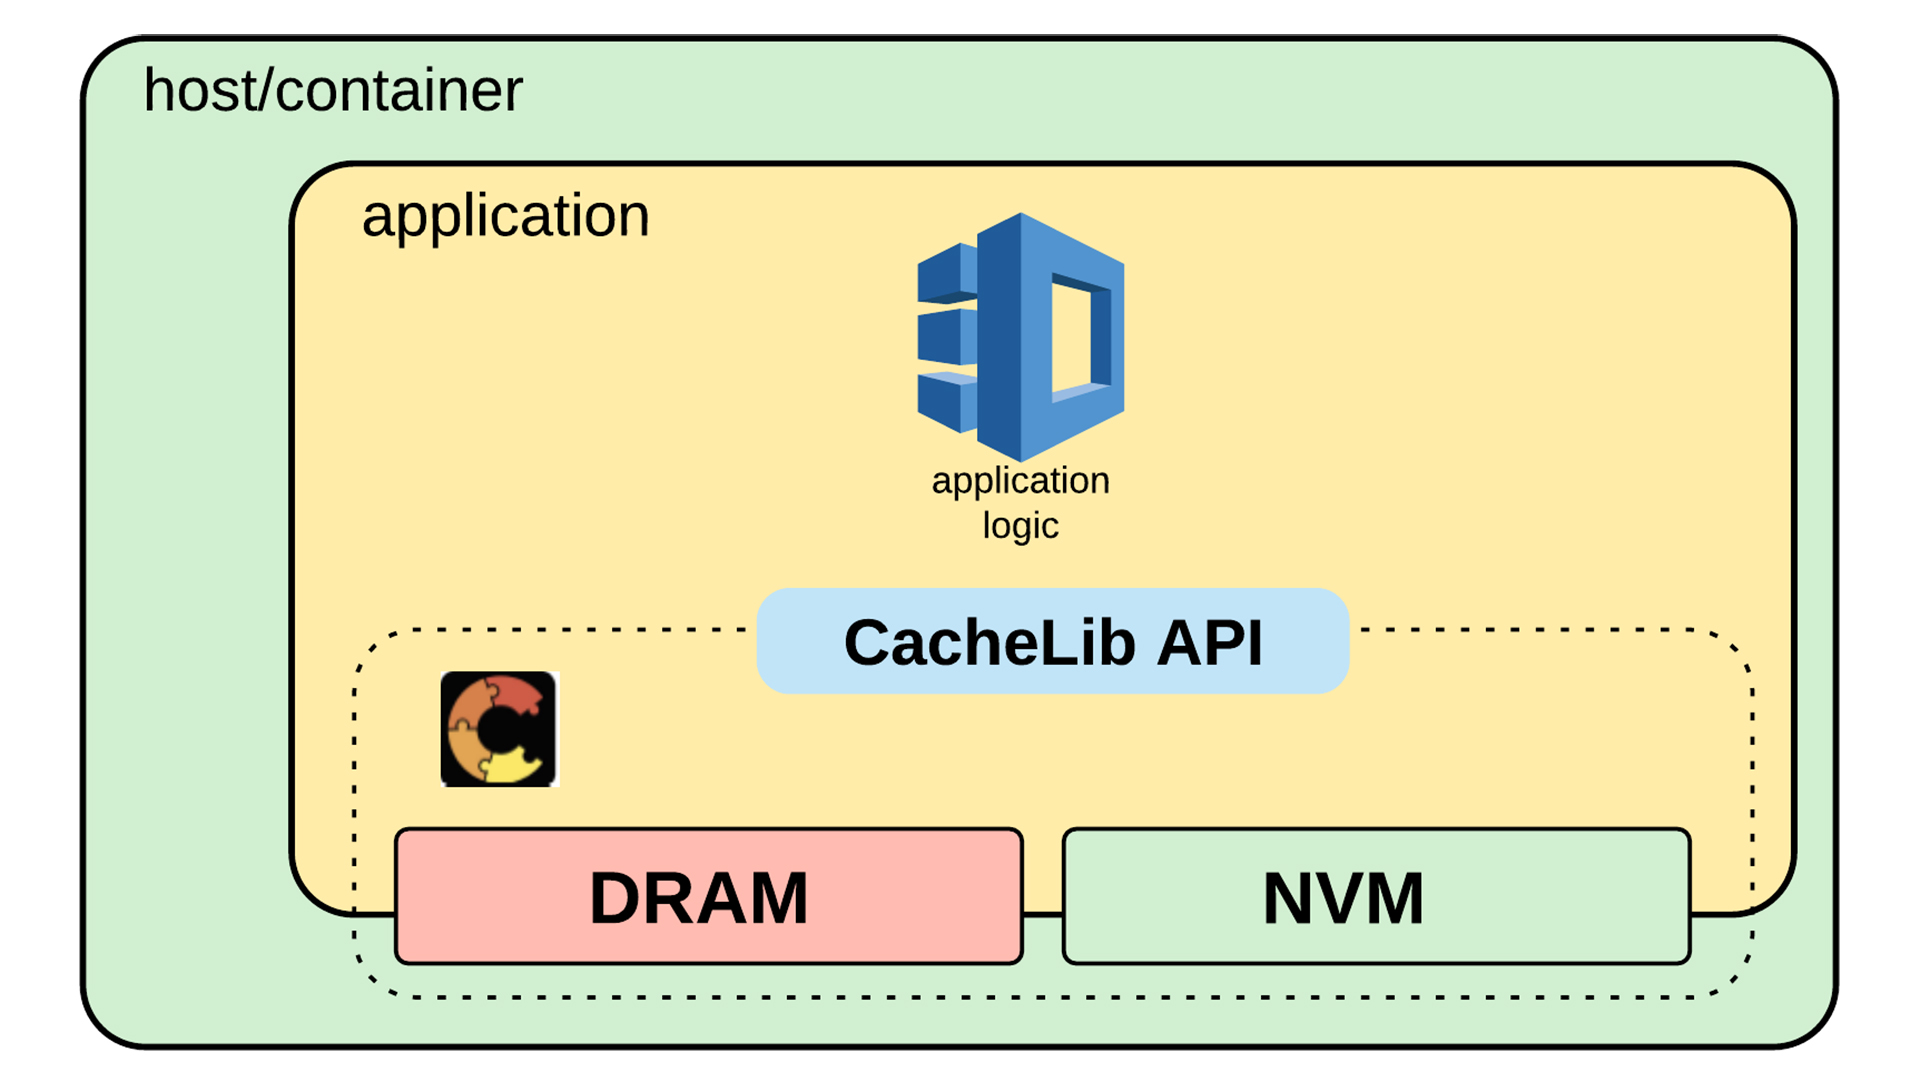 CacheLib's C++ library enables developers to build and customize scalable and concurrent caches through its simple API.